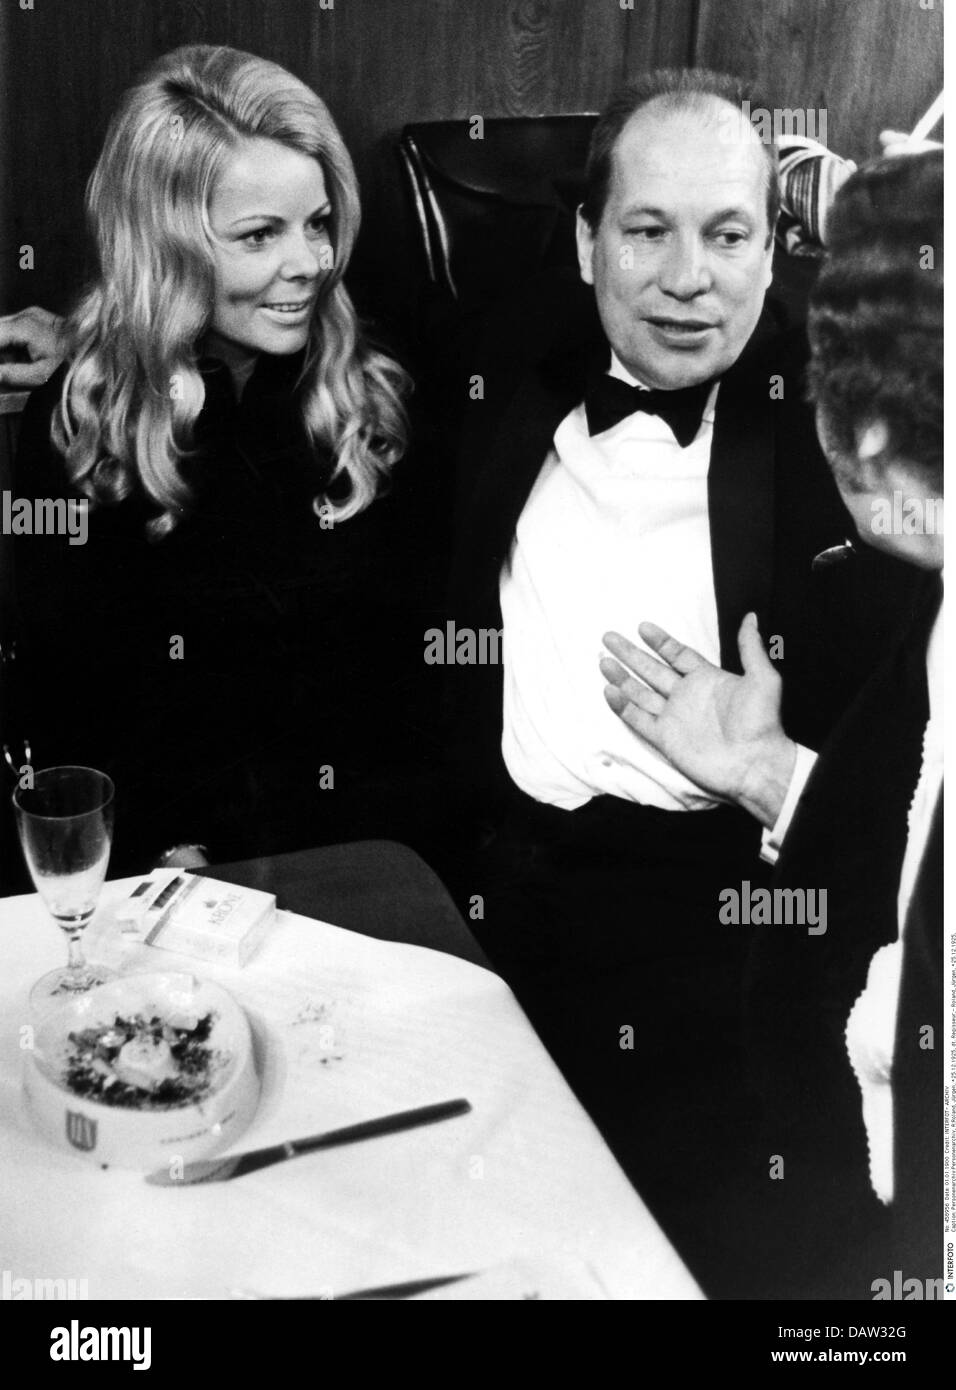 Roland, Juergen, 25.12.1925 - 21.9.2007, German director, half length, with his wife, Hofbraeuhaus, Munich, 1972, - Stock Image